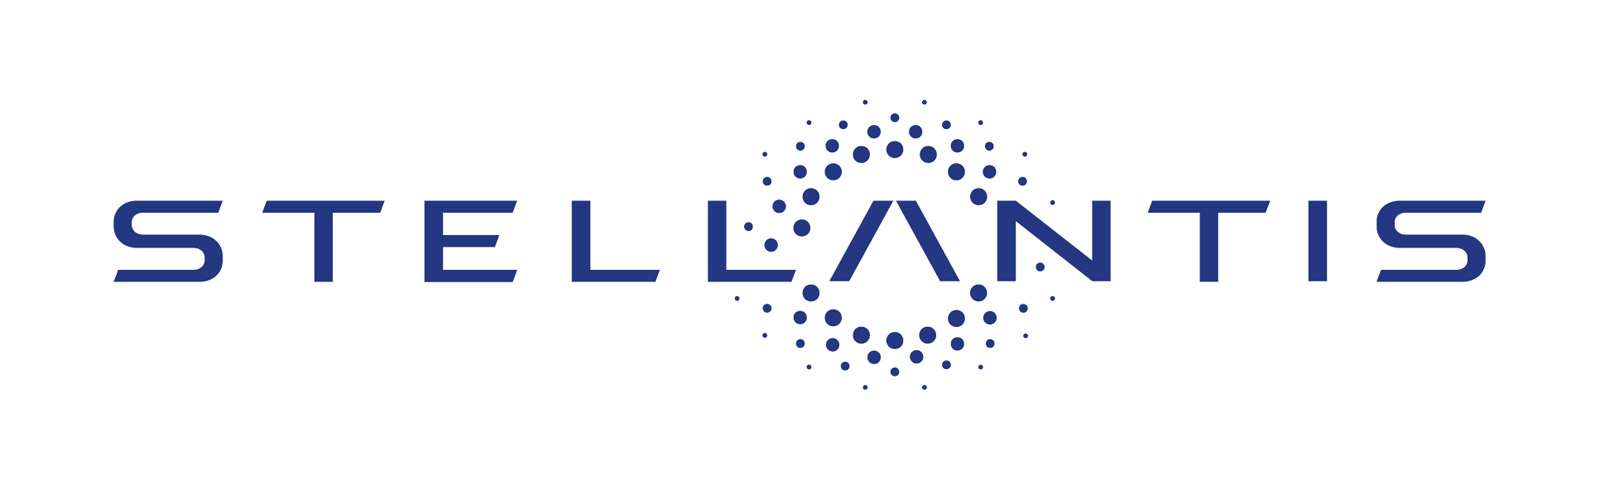 The new name and governance of Stellantis take effect